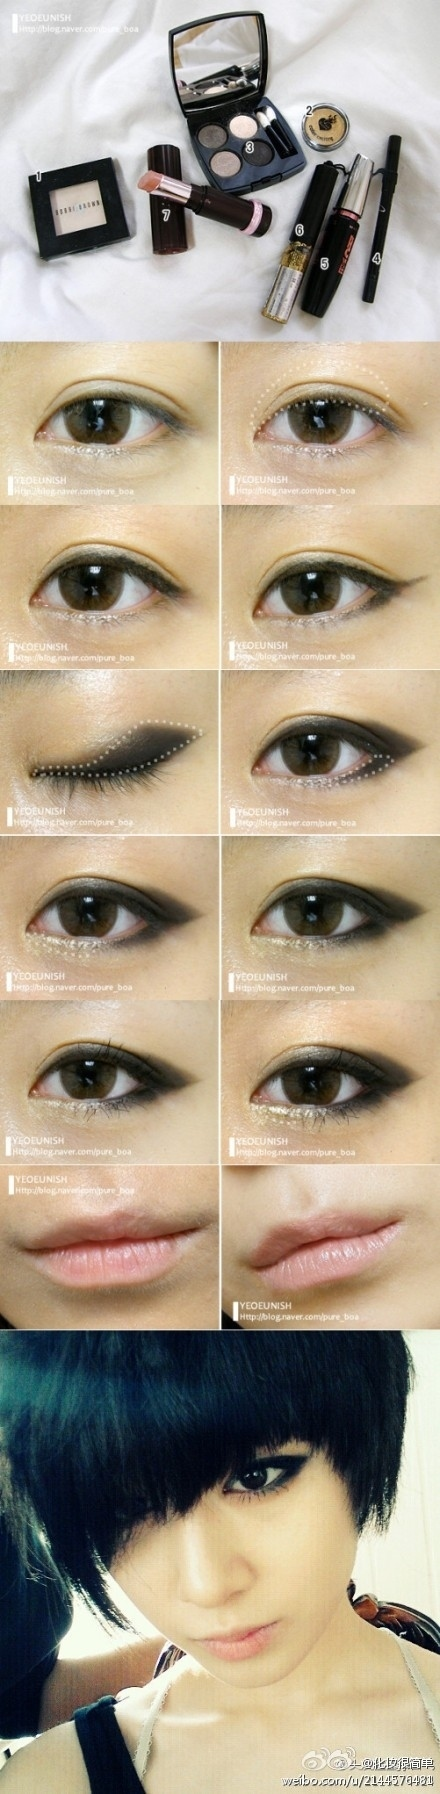 medium resolution of apply black eyeshadow in a whale shape to create this winged smoky eye look